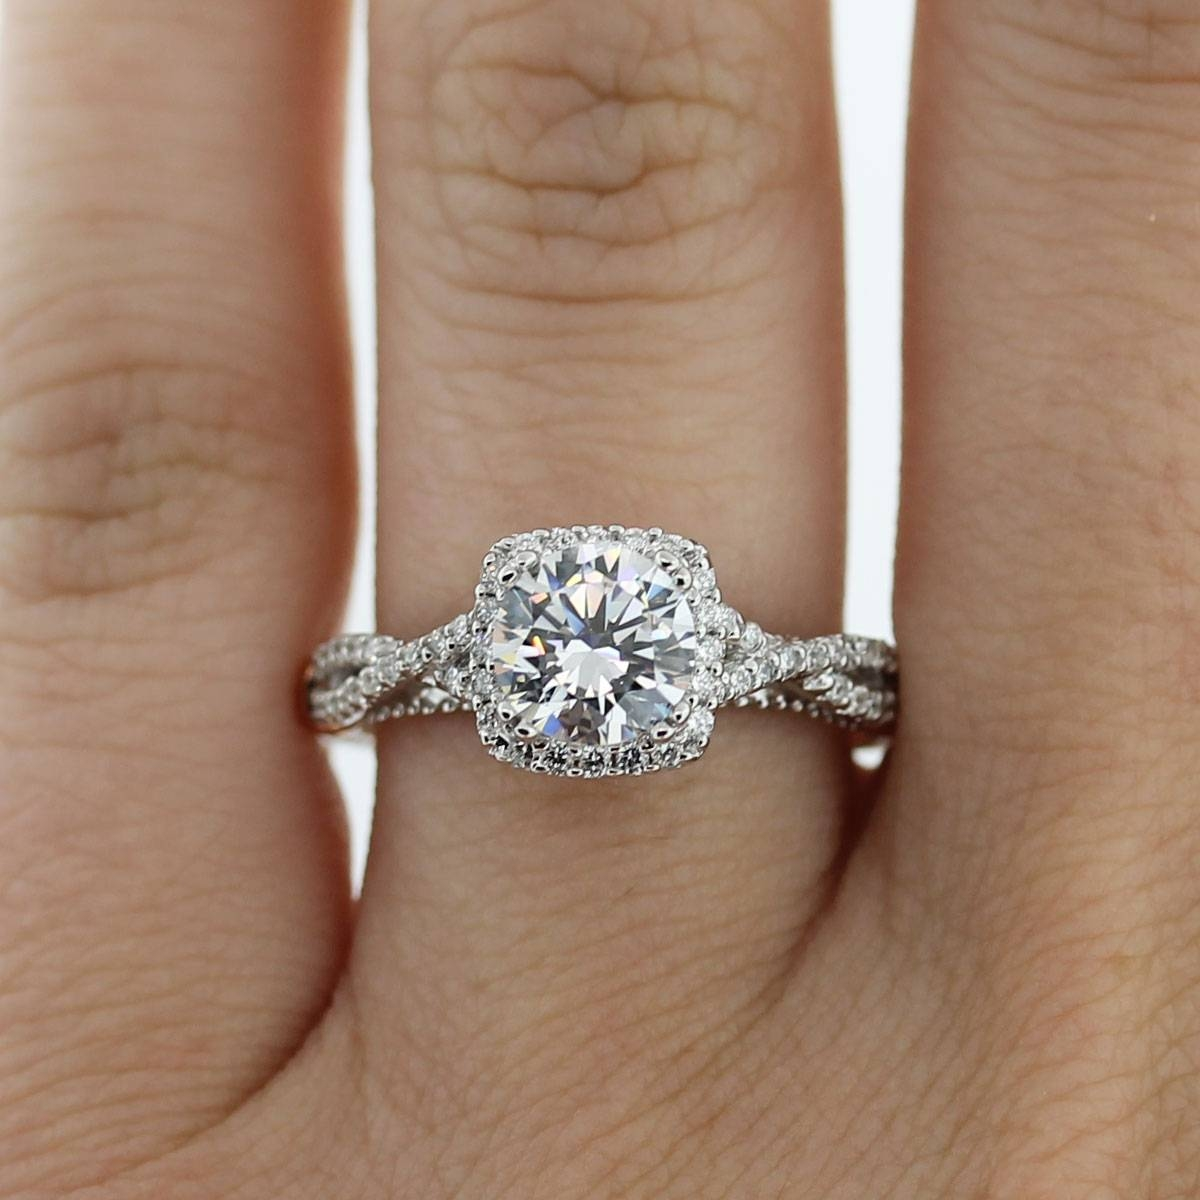 Verragio Engagement Rings Boca Raton – Raymond Lee Jewelers With Regard To Boca Raton Engagement Rings (View 14 of 15)